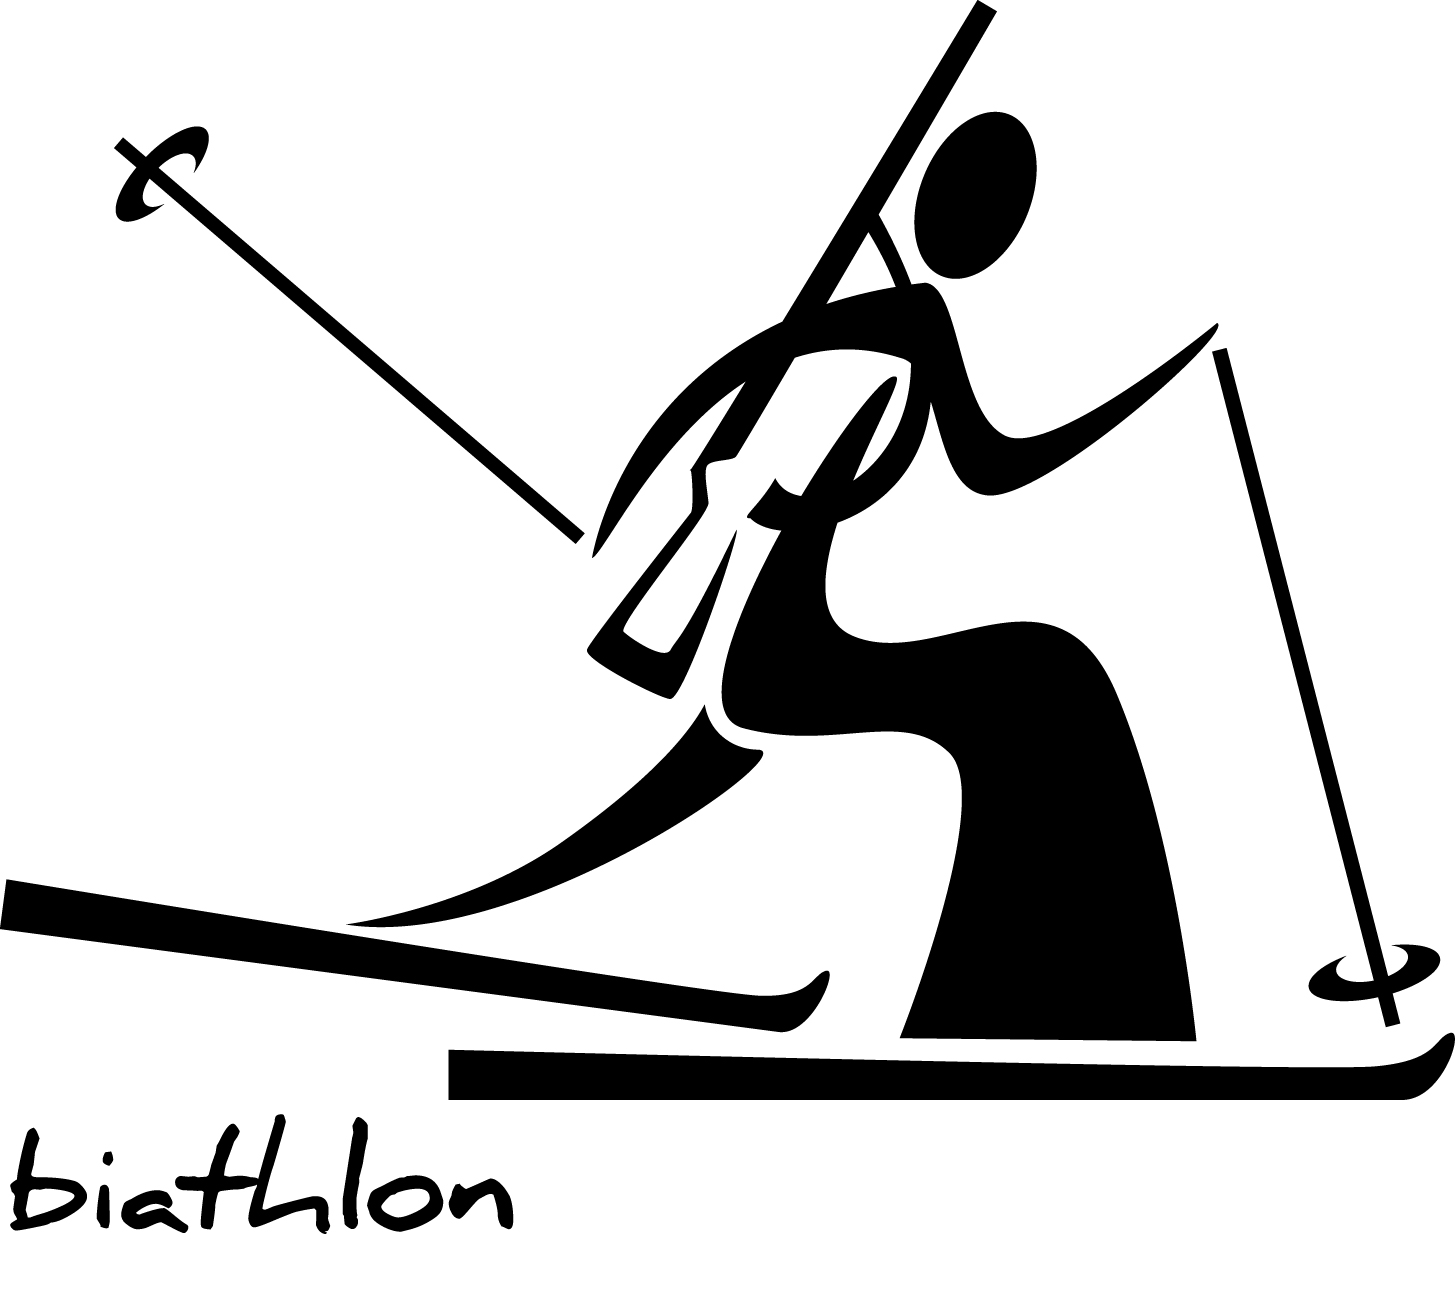 Congratulations to the 2017 Biathlon Team